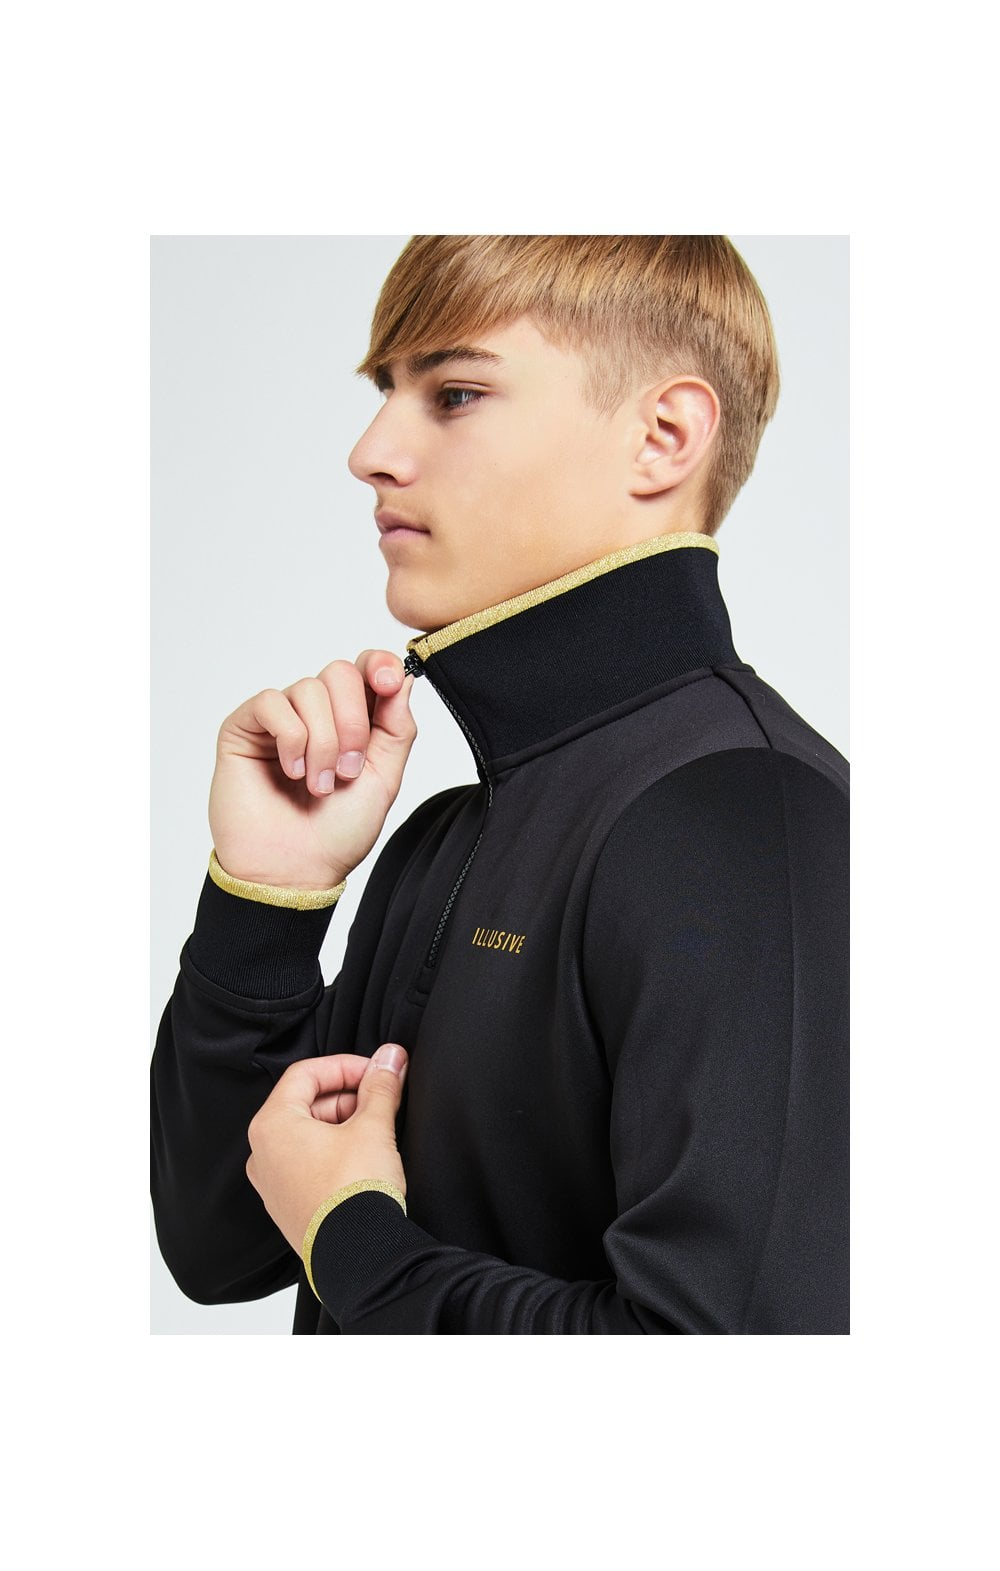 Illusive London Sovereign 1/4 Zip Hoodie  - Black & Gold